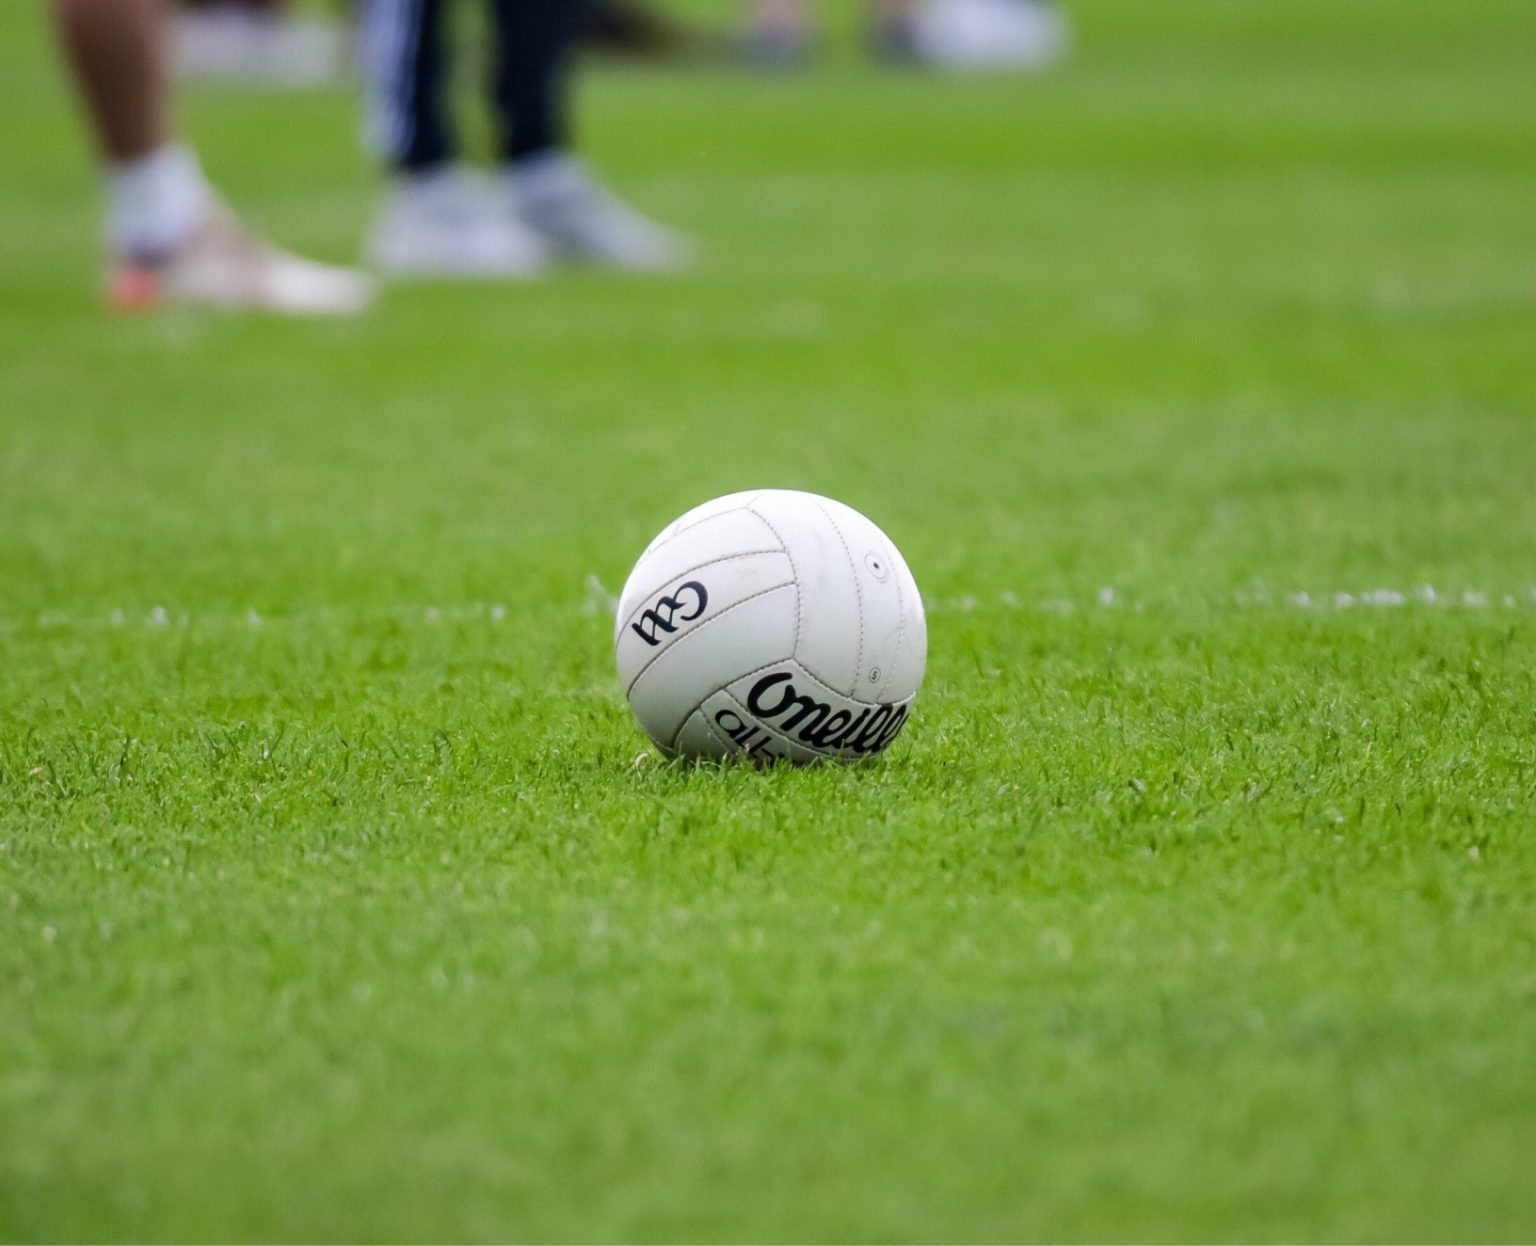 A white football on a grass pitch at an All Ireland Club Game